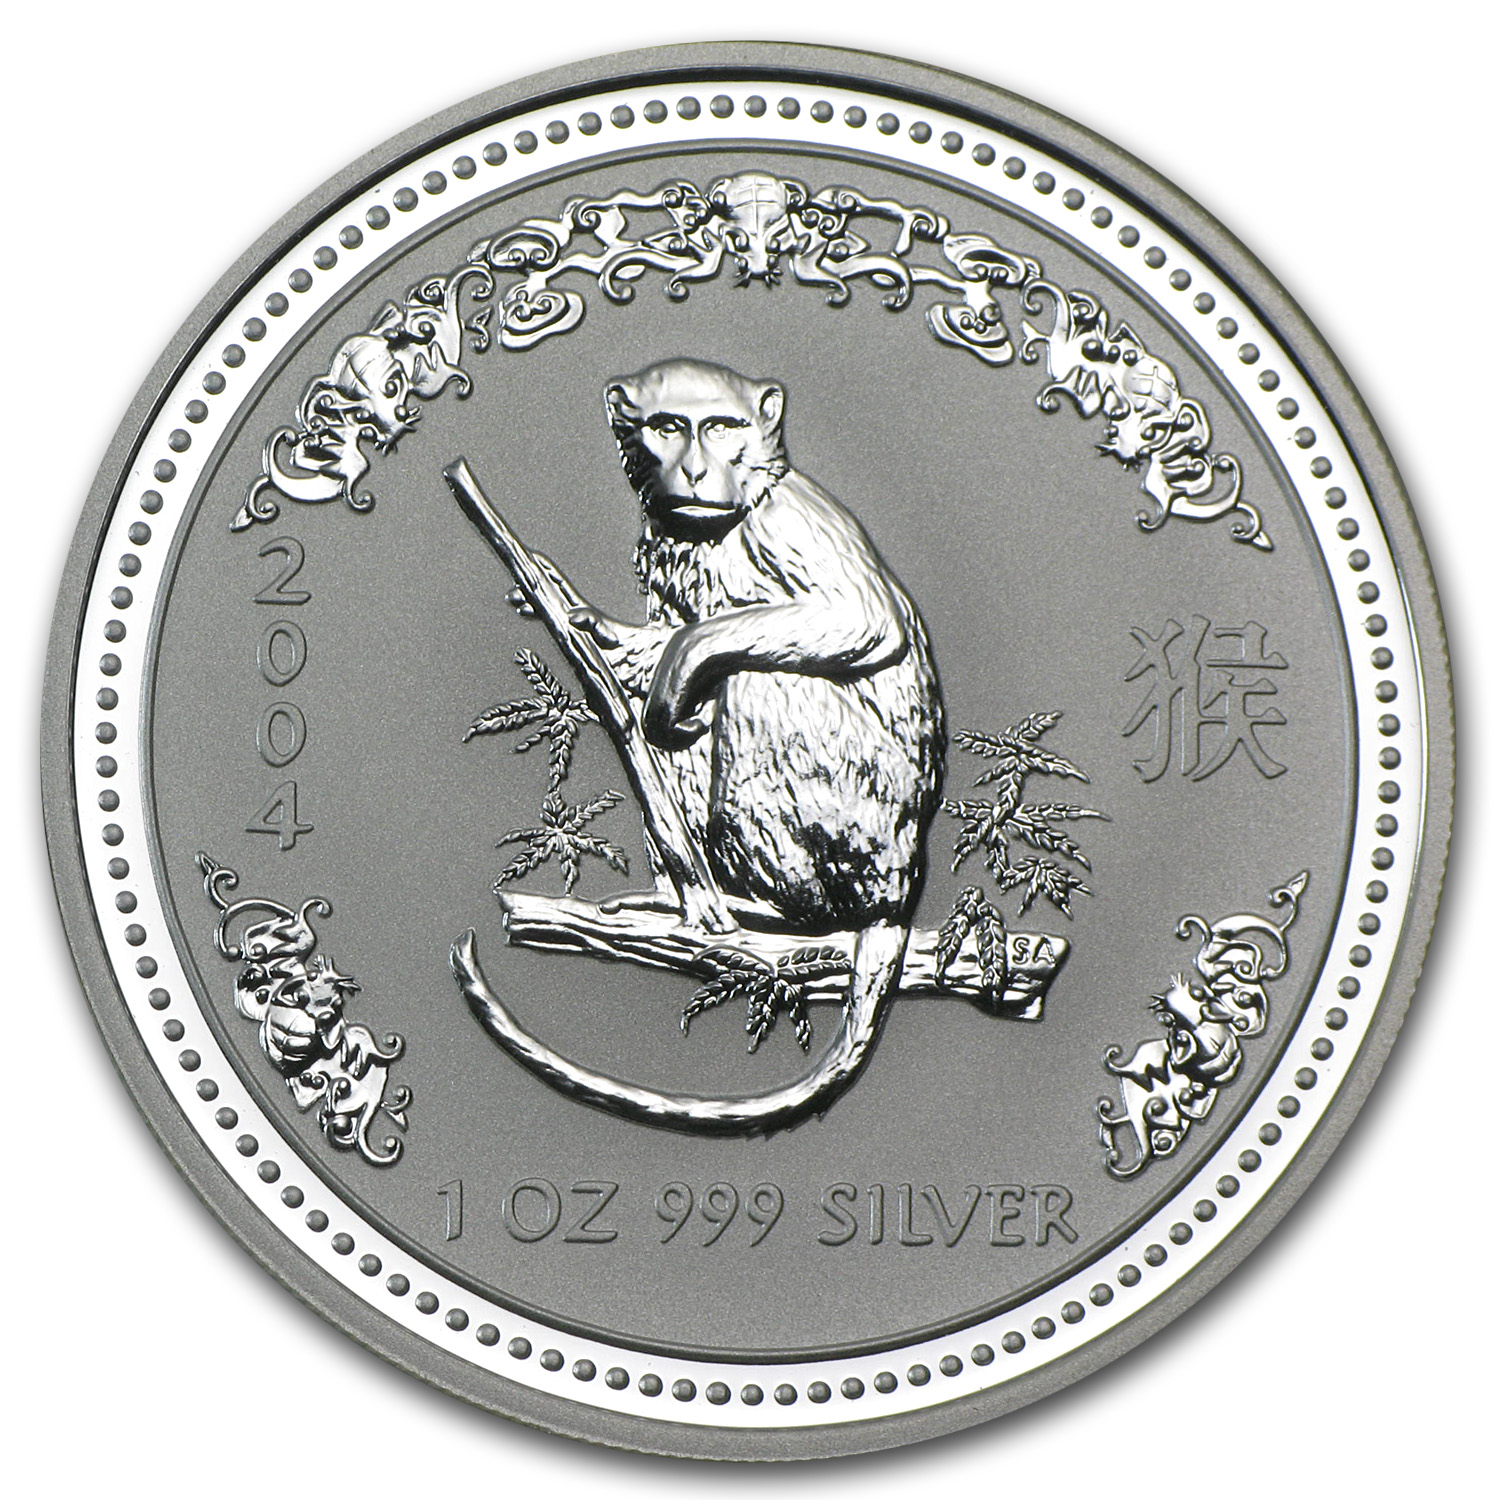 2004 Australia 1 oz Silver Year of the Monkey BU